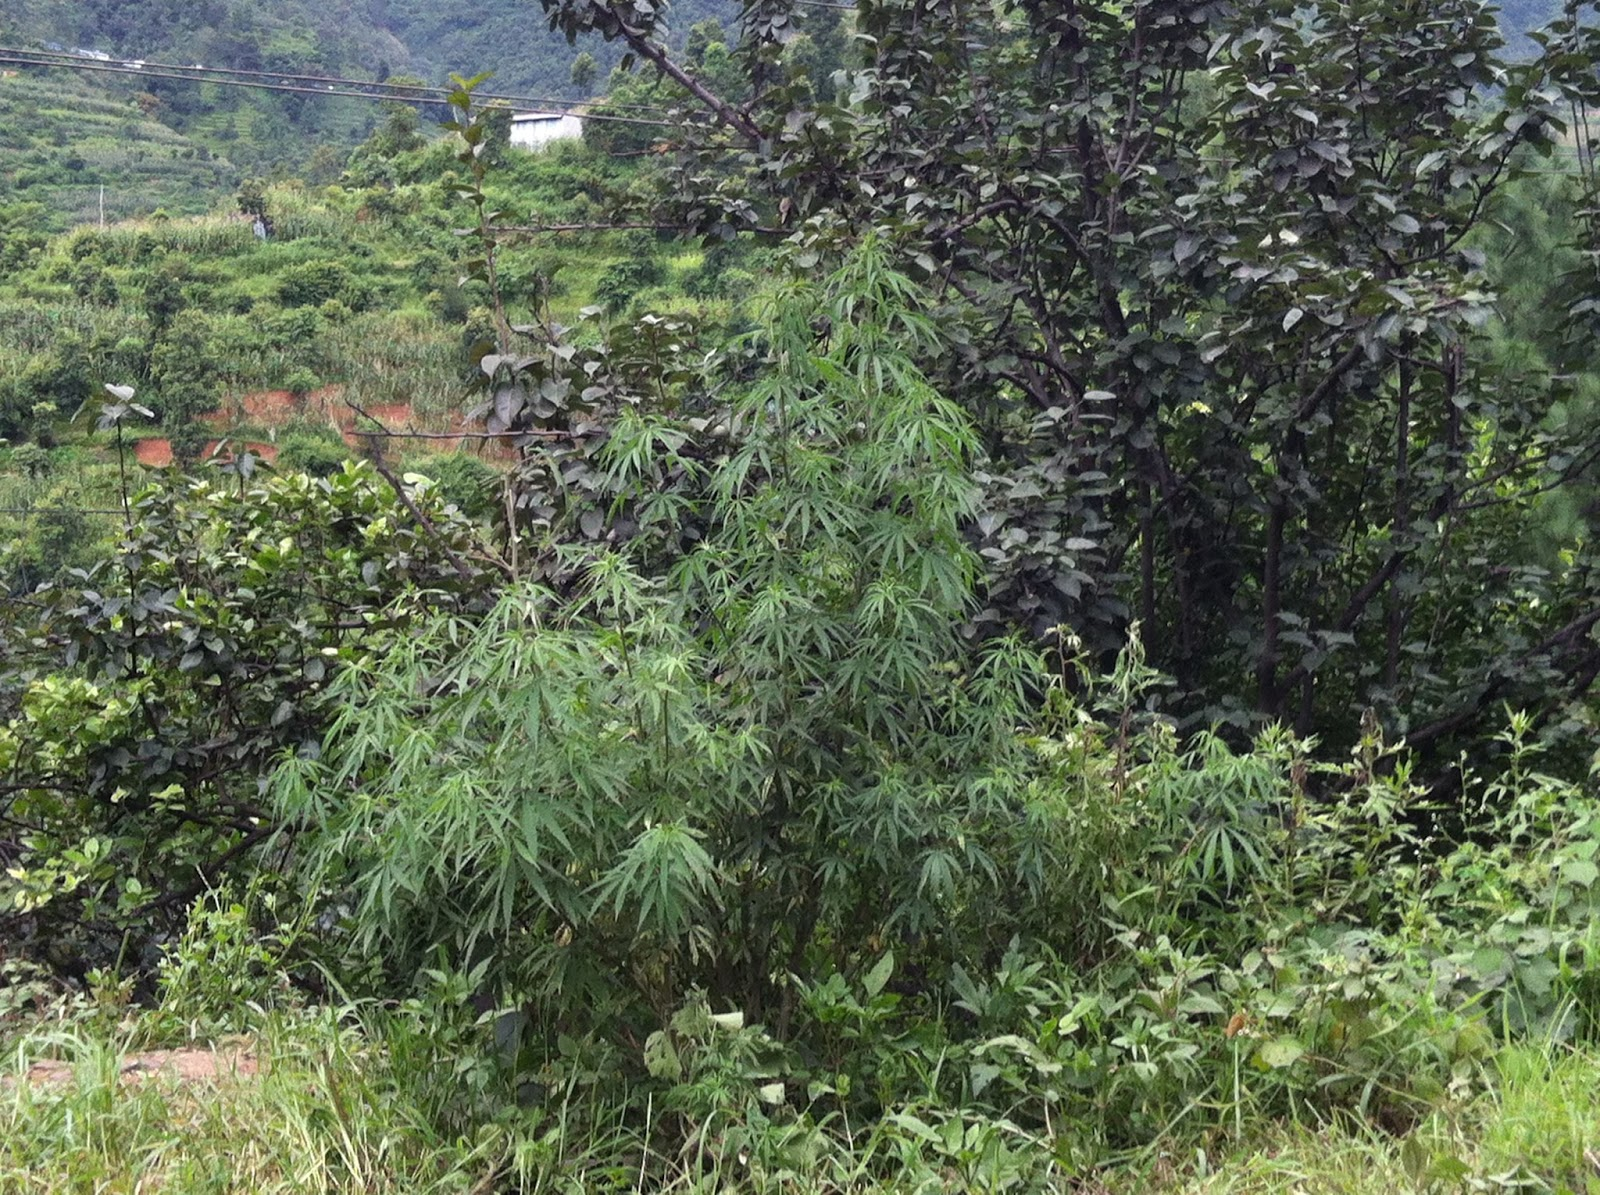 Best Weed In The World Marijuana grows naturally in